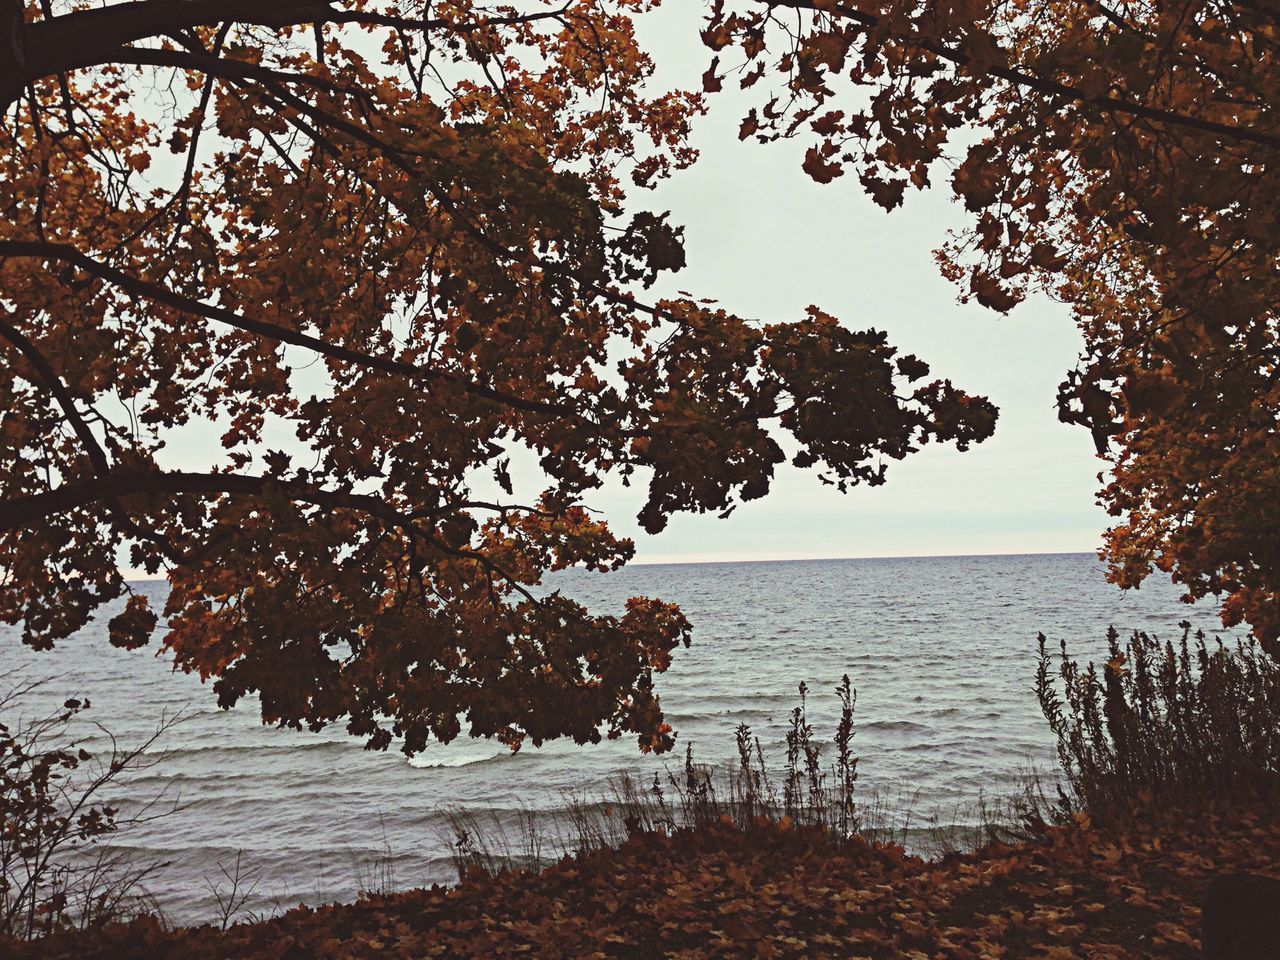 tree, nature, water, beauty in nature, lake, no people, branch, tranquility, growth, outdoors, scenics, sky, day